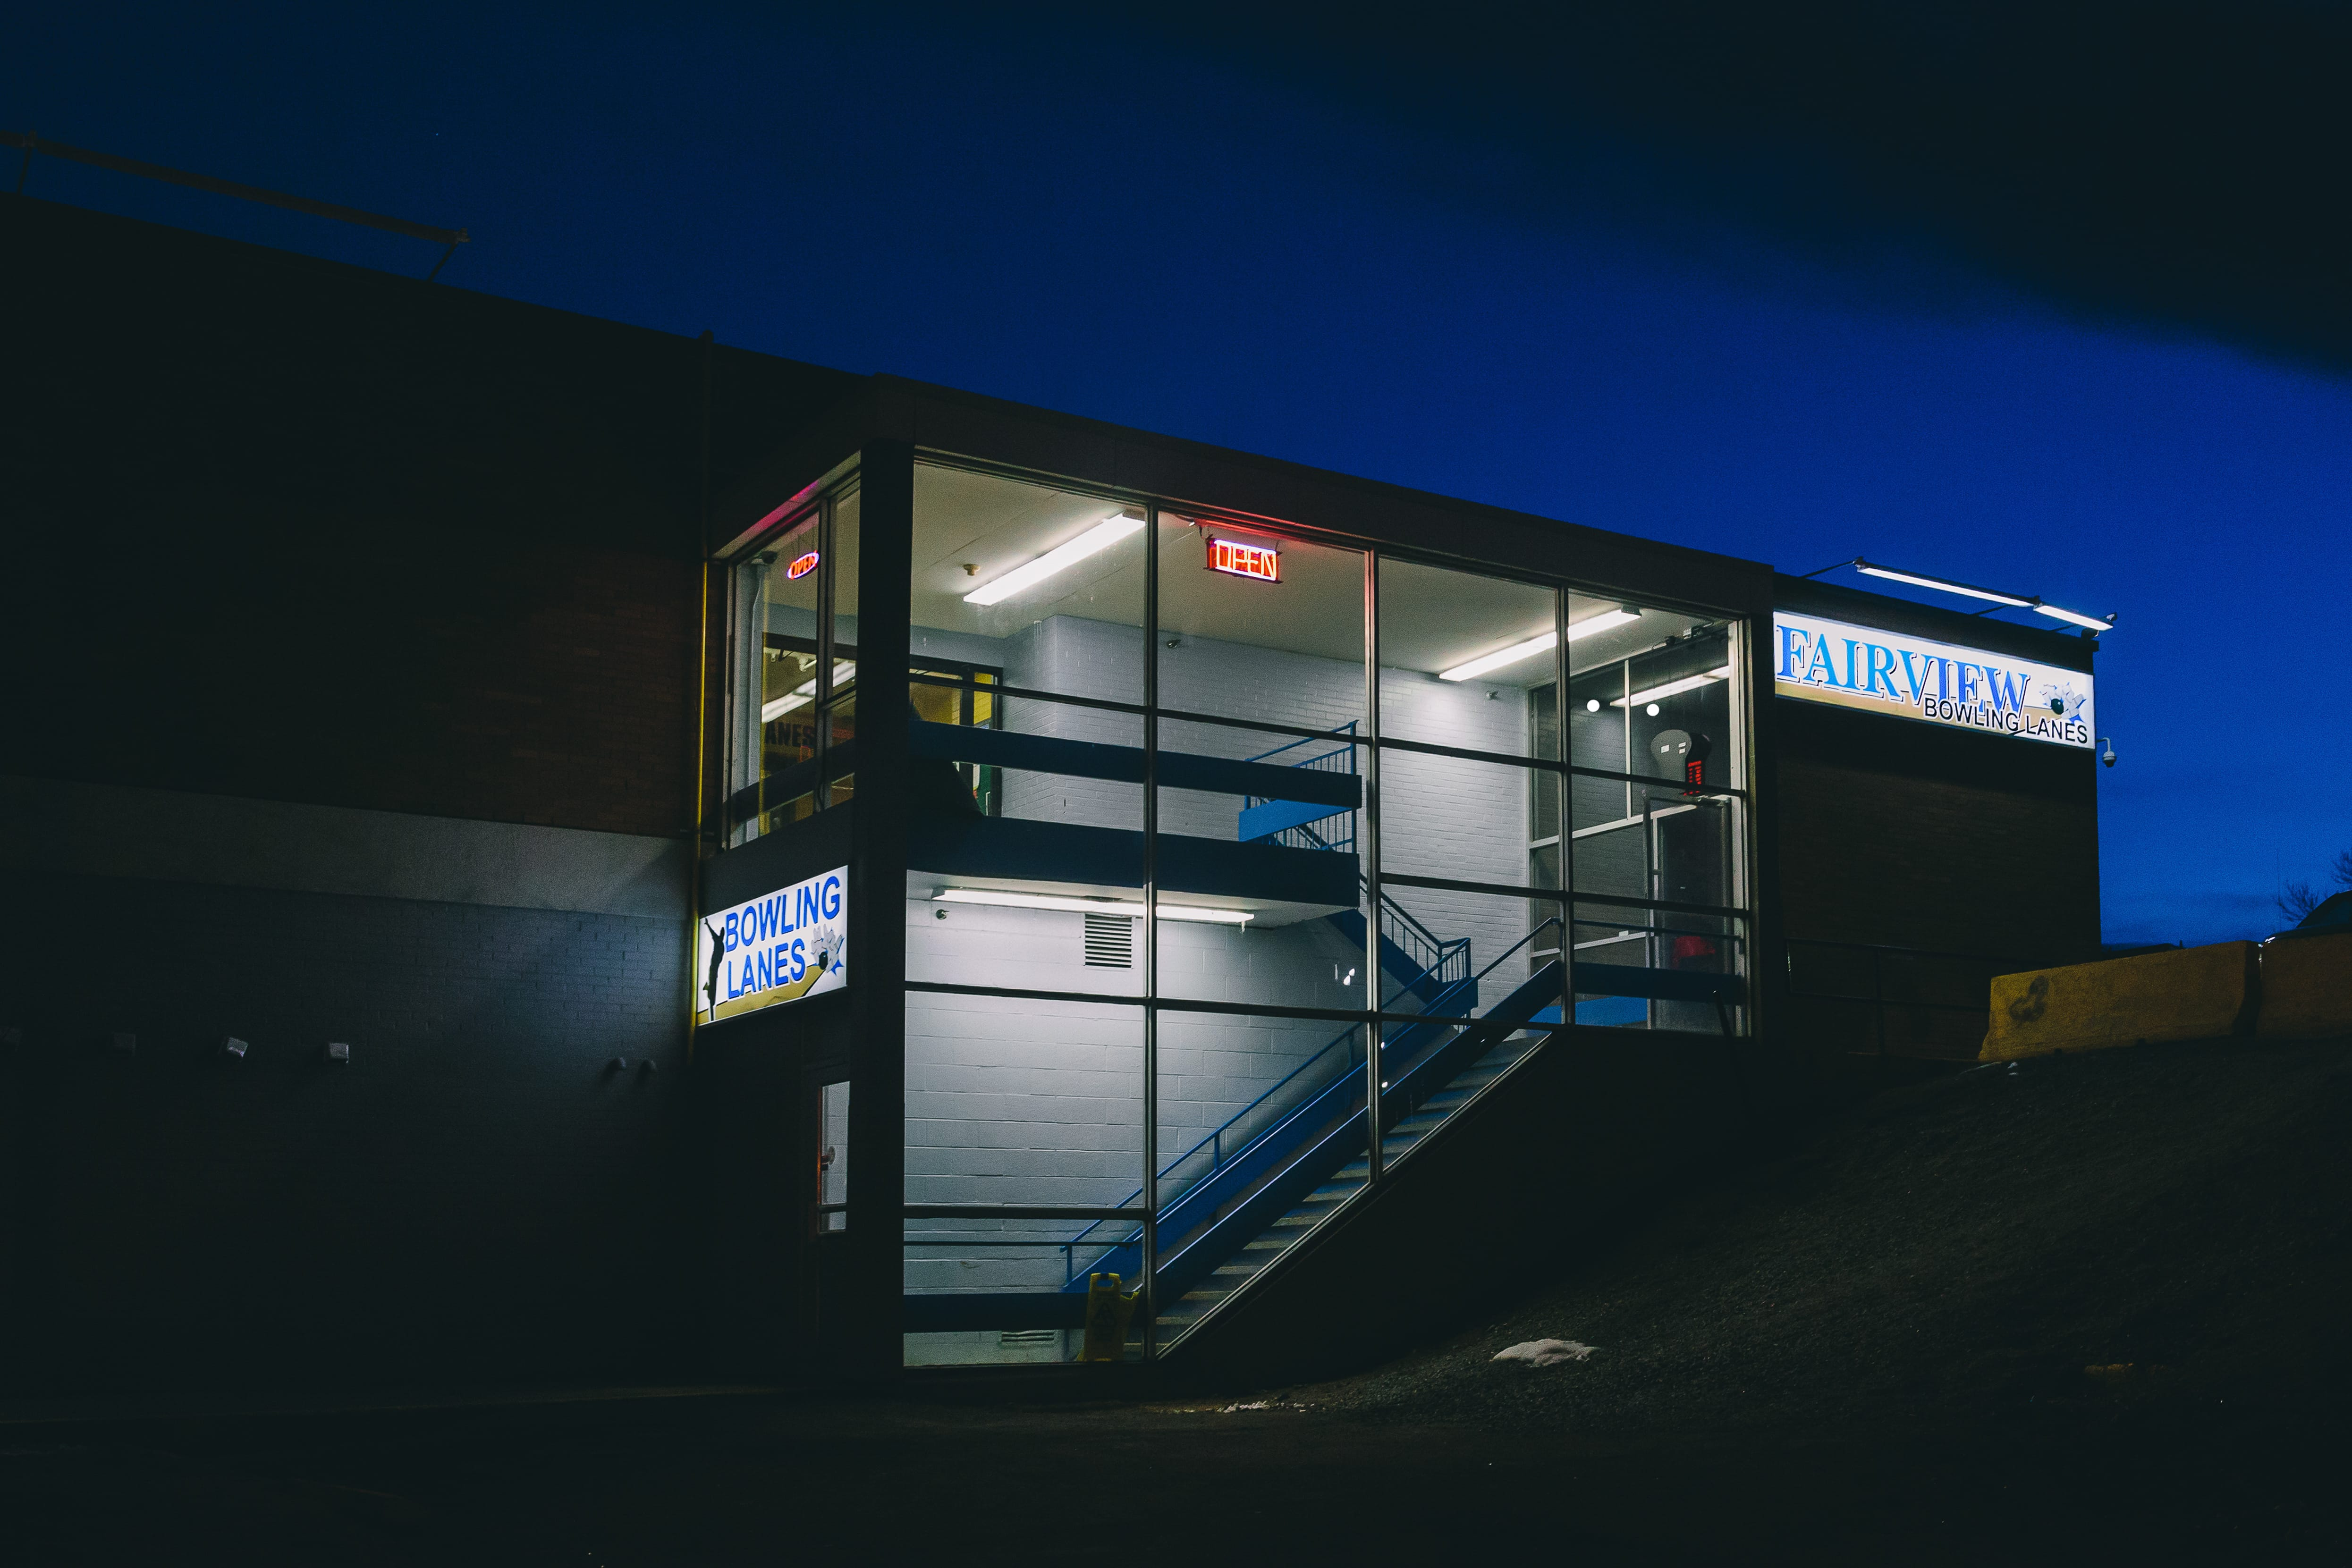 A photograph depicting Fairview Bowling Lanes Entrance at Night